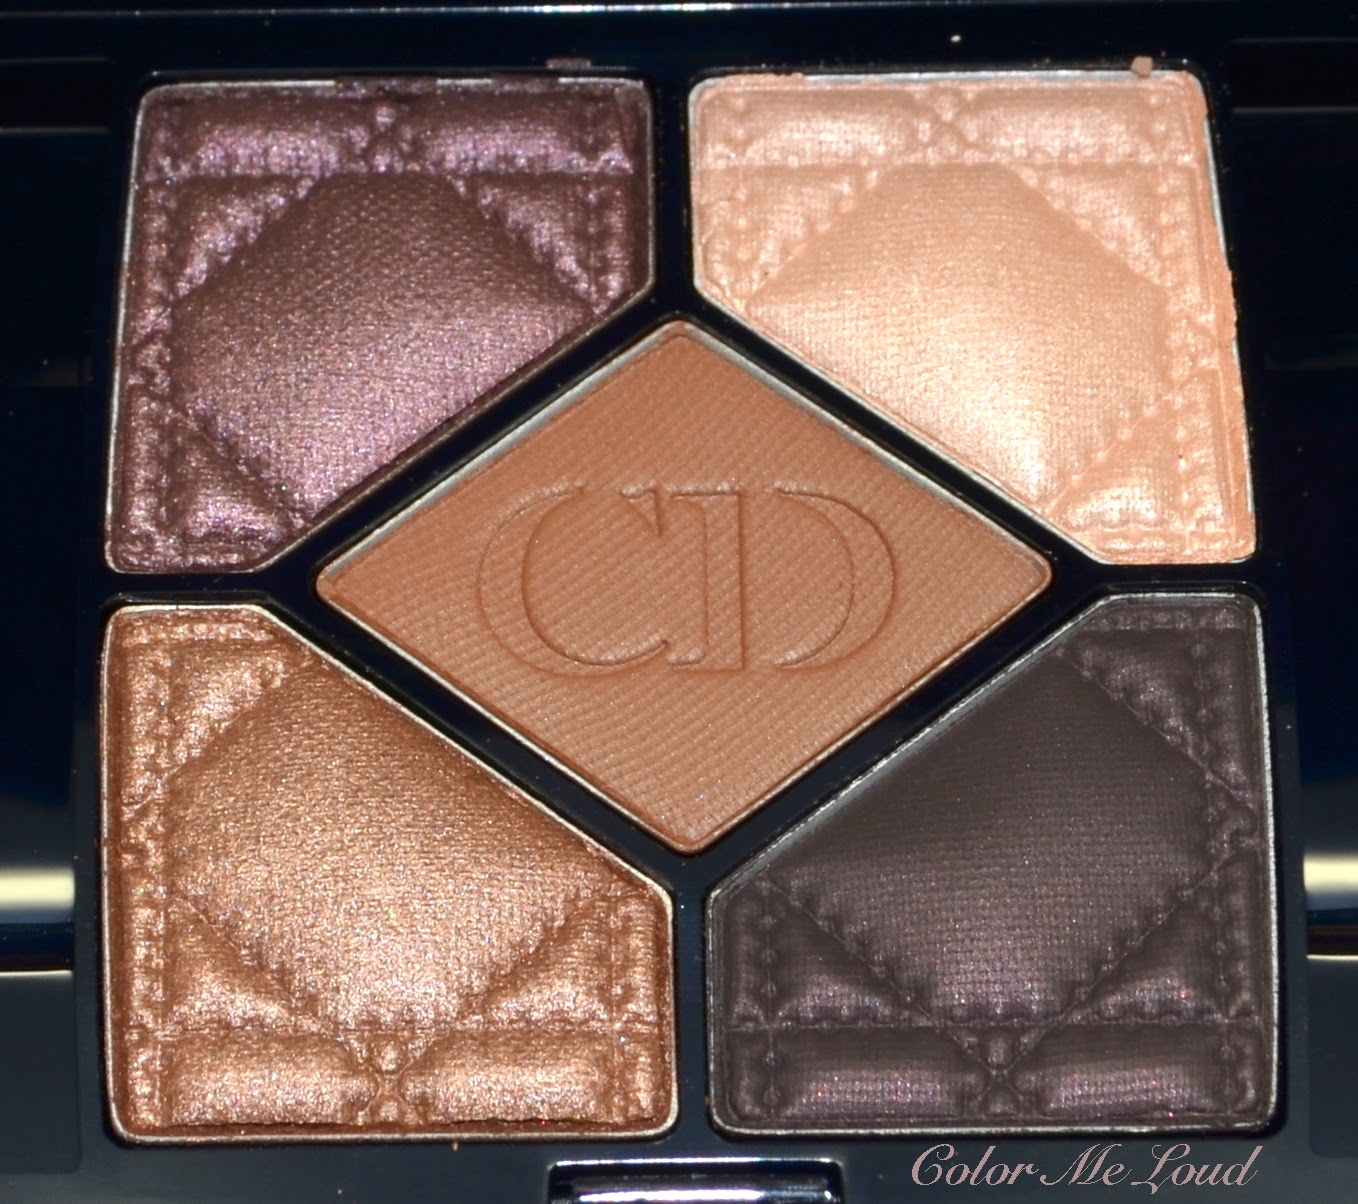 d2c6b793a53 Needless to say, I love this palette and since it has colours I use in my  eye makeup the most, it's just perfect!!!! :)